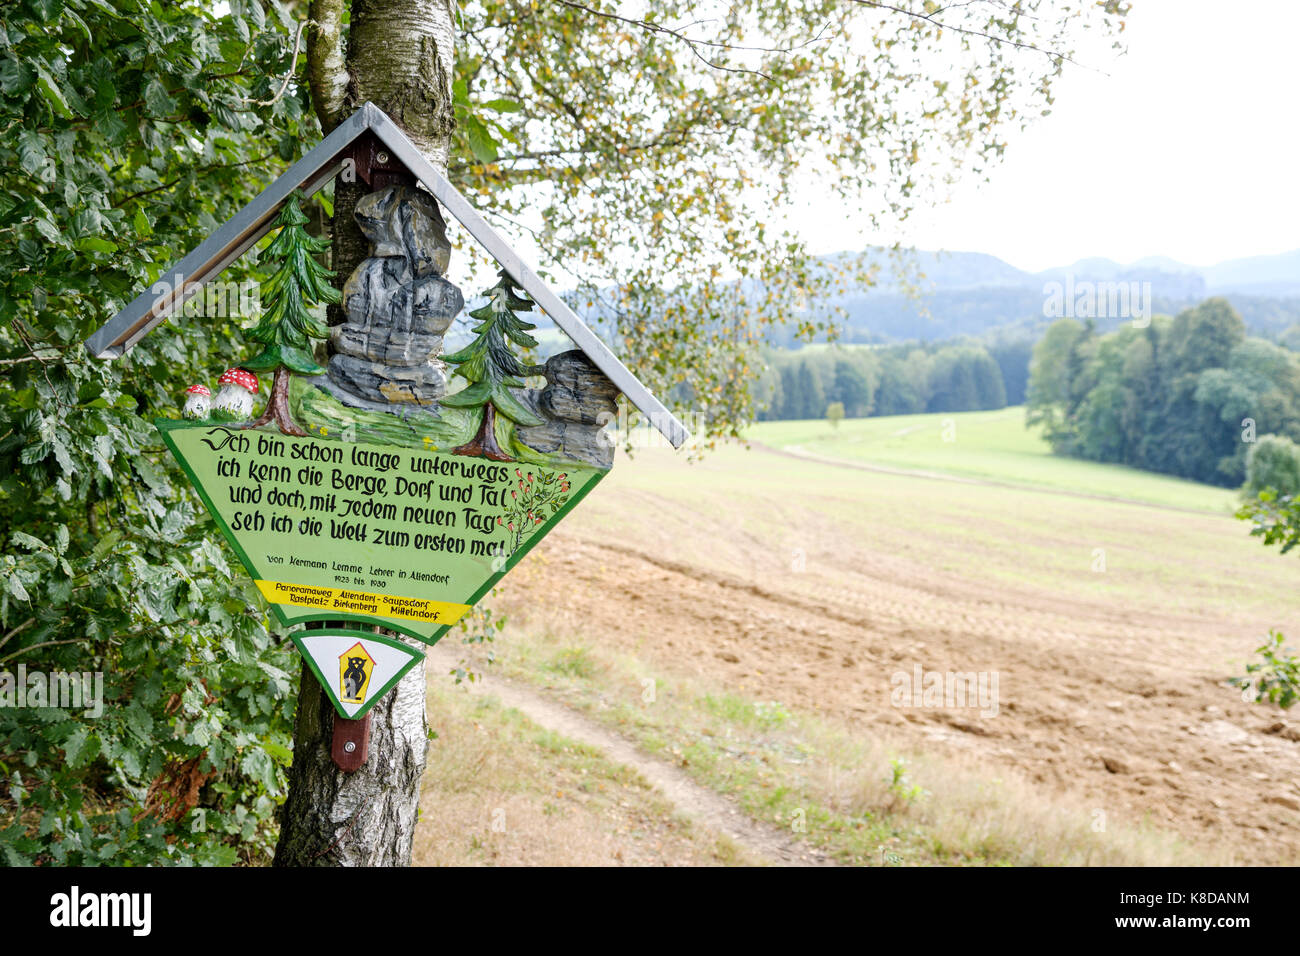 sign on the Panoramaweg near Mittelndorf, Sächsische Schweiz, Saxony, Germany - Stock Image